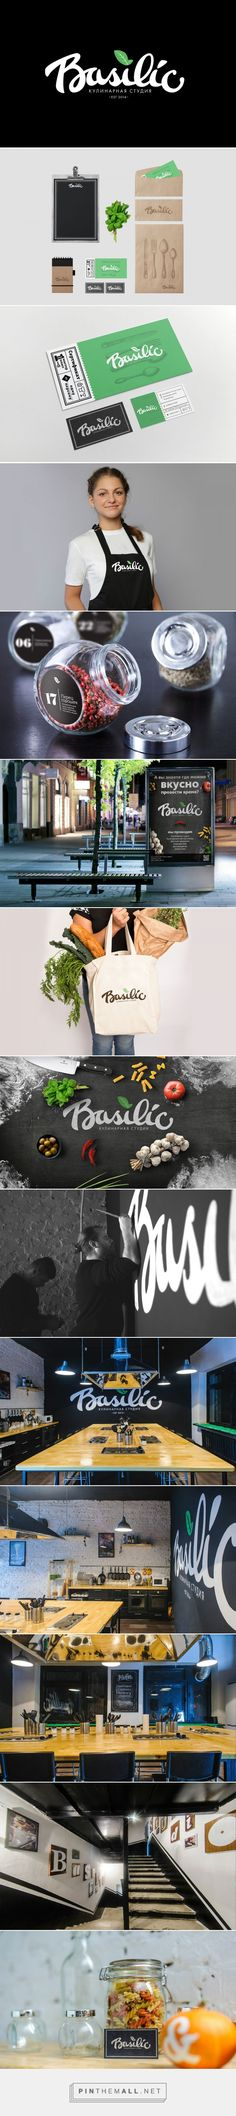 Basilic on Behance... - a grouped images picture